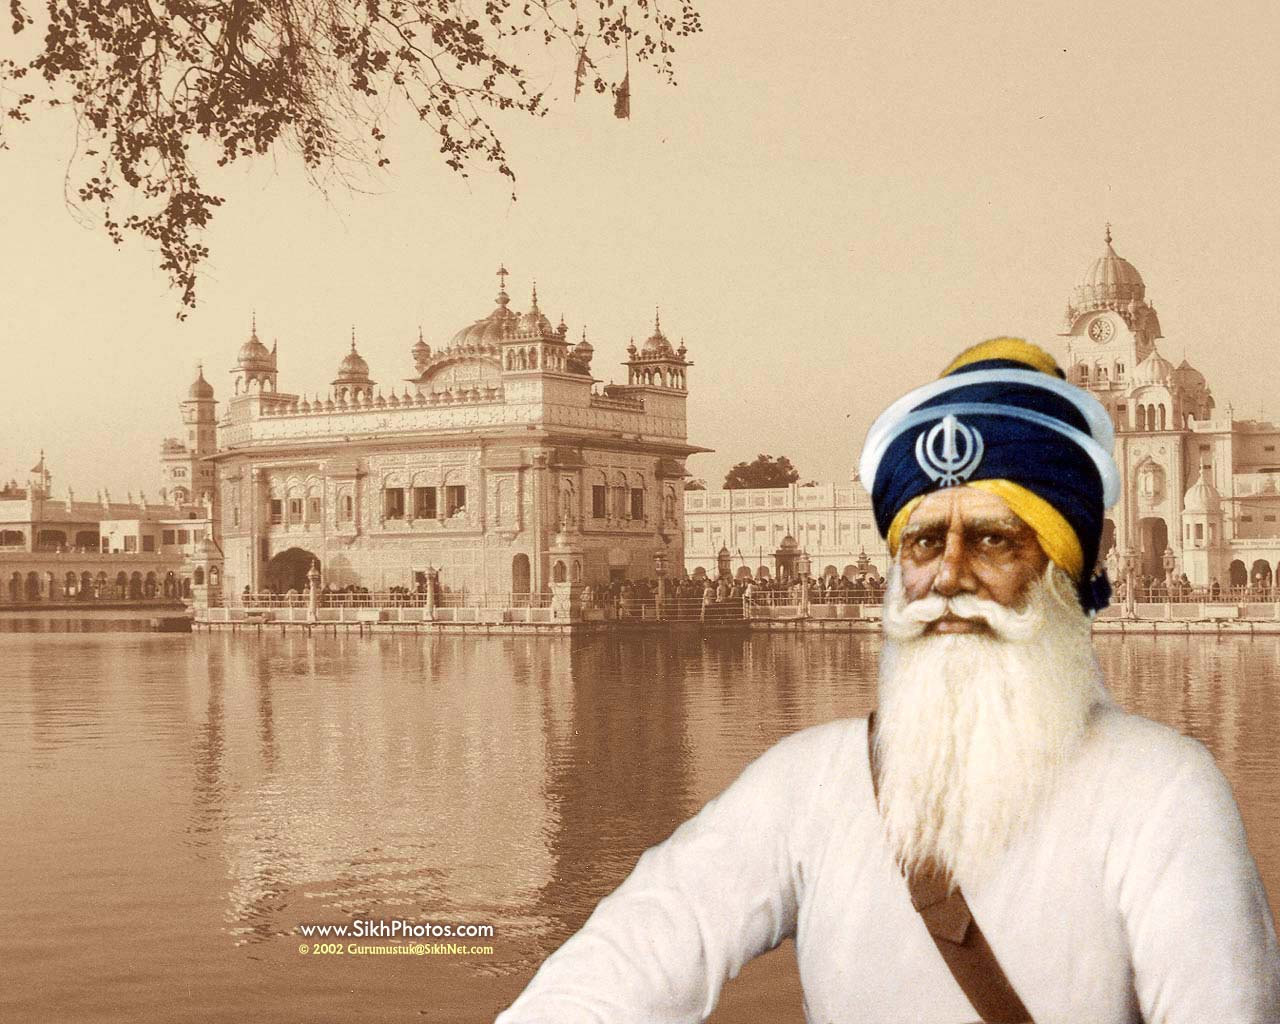 The Sikhism Computer Wallpaper